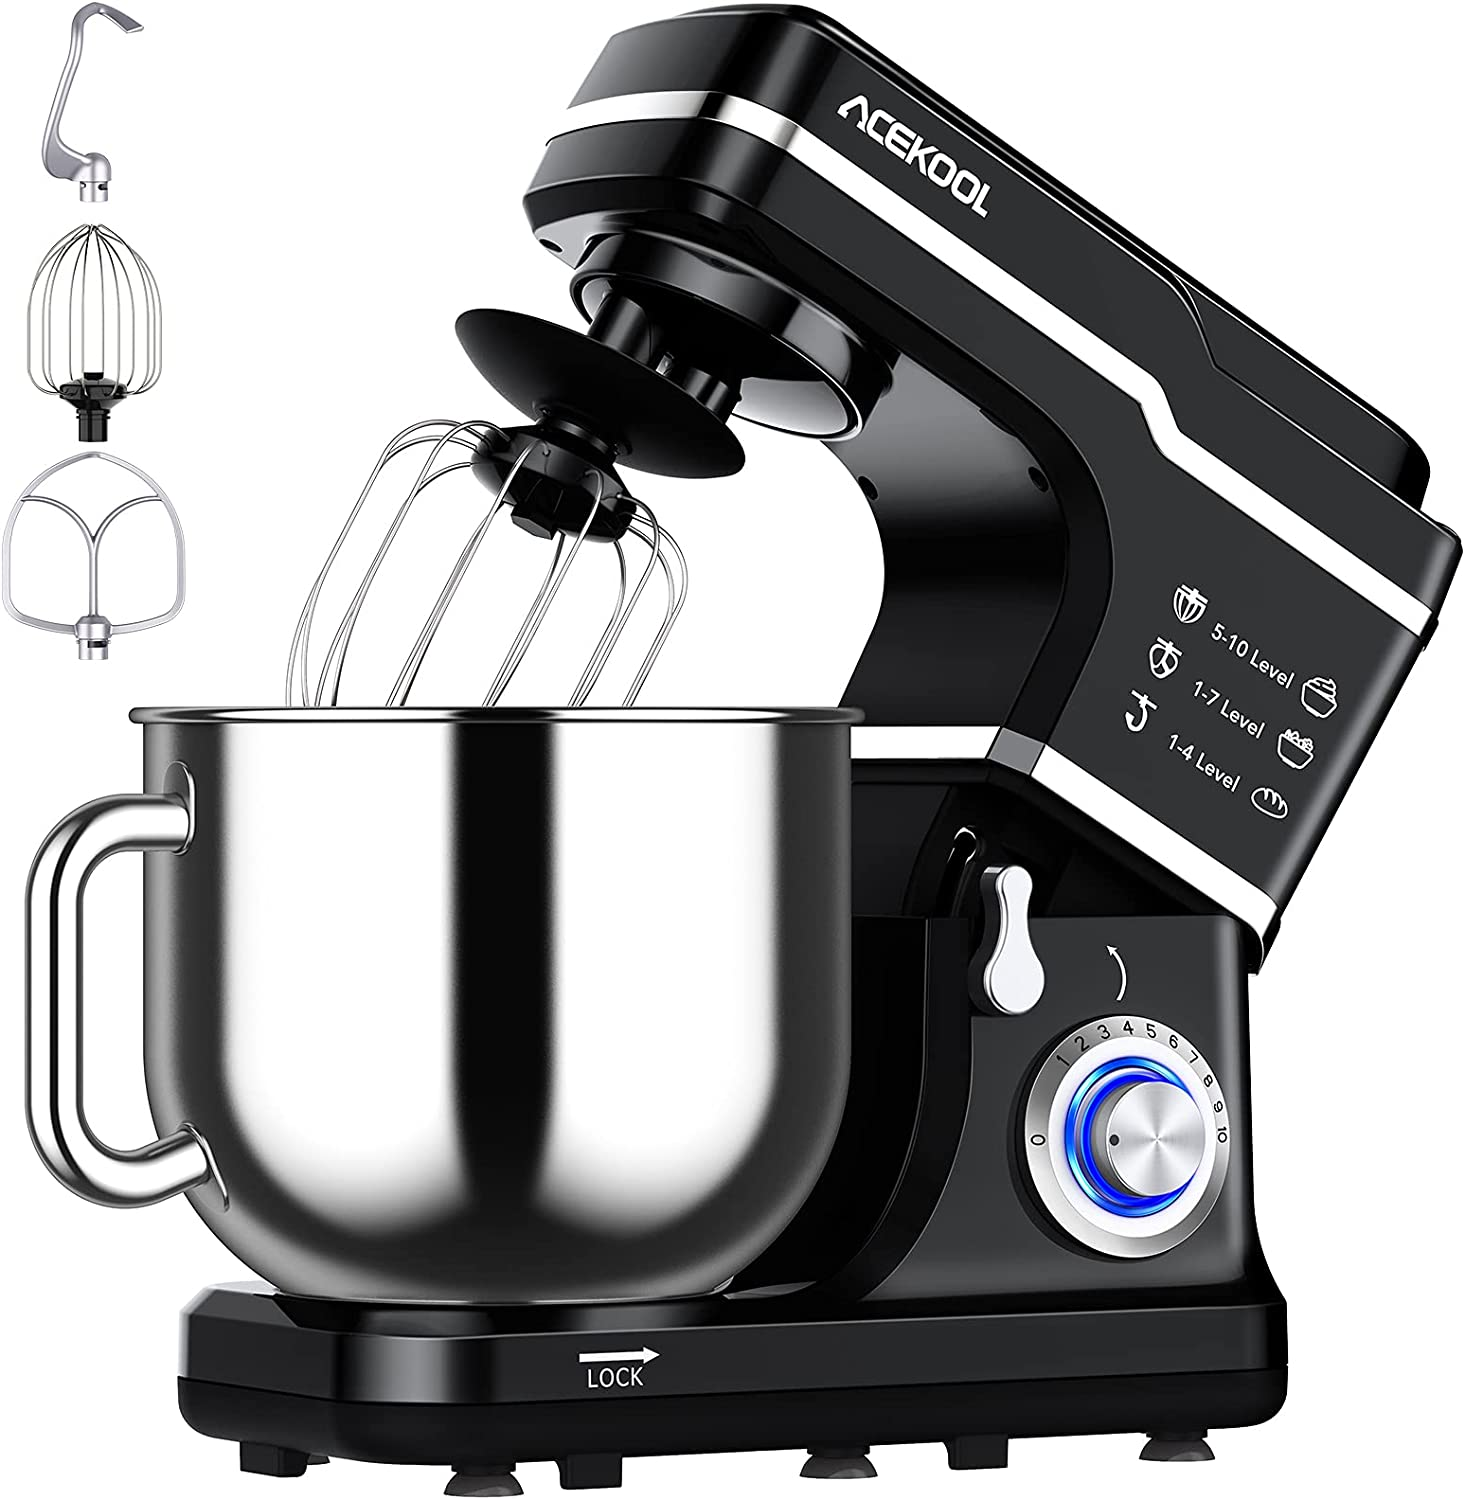 Stand 2021 autumn and winter new Mixer 7.5QT Kitchen Electric Food 10-Speed Tilt-Hea Selling